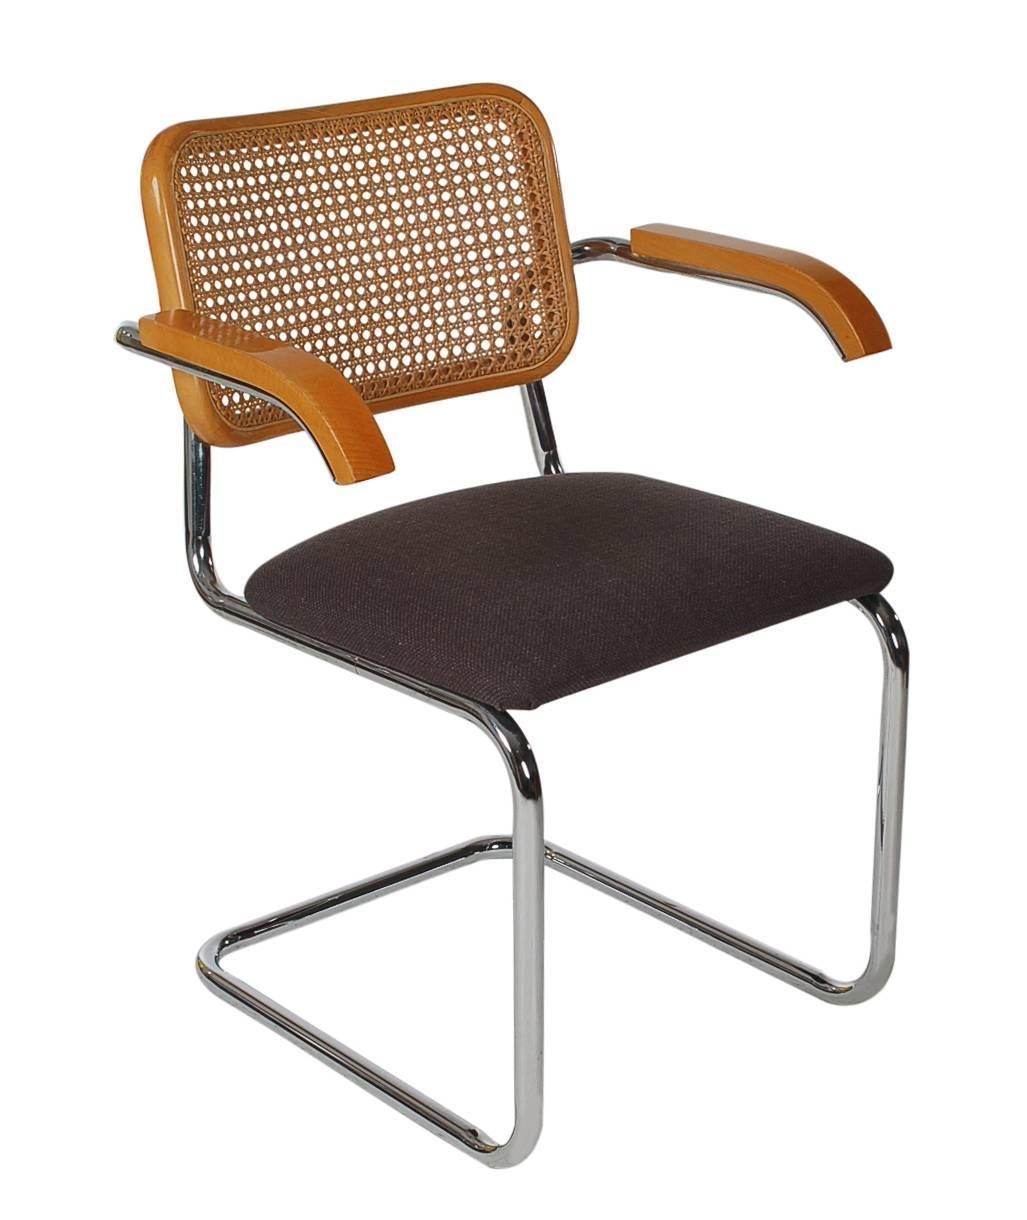 breuer chairs for sale power recliner chair parts mid century modern set of four marcel cesca cane